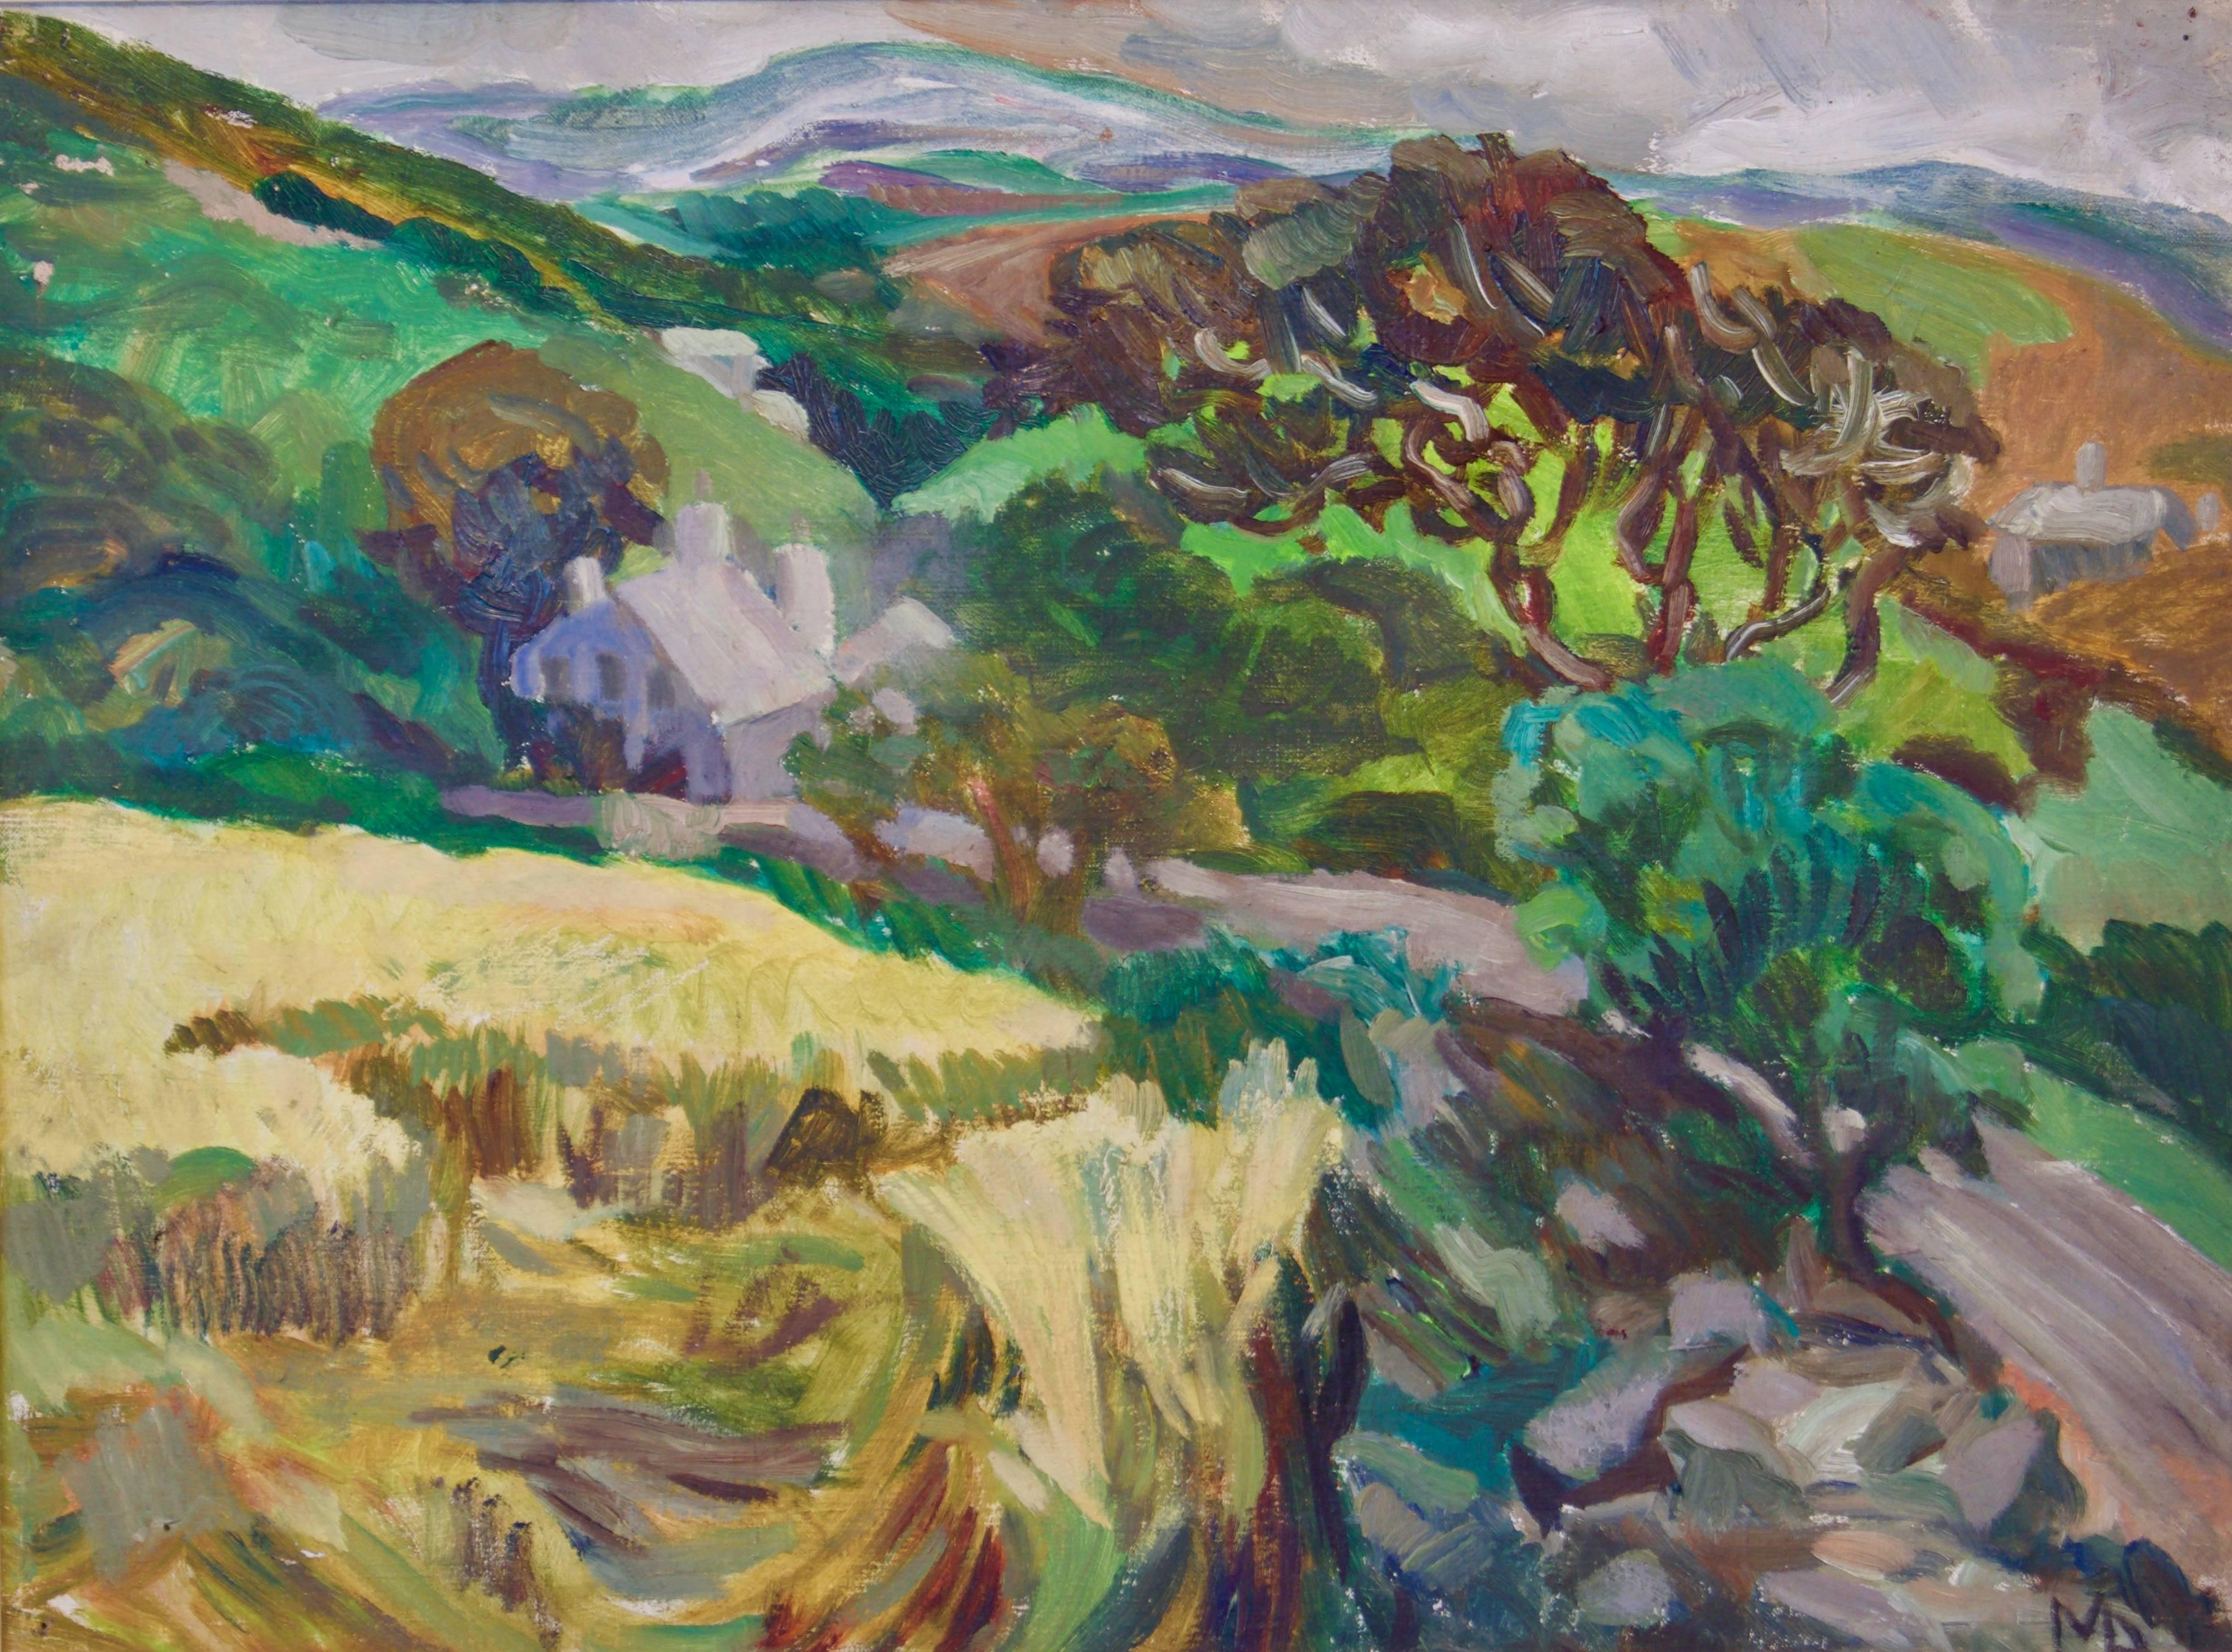 Provence France Landscape - Early 20th Century Impressionist Oil - Muriel Archer